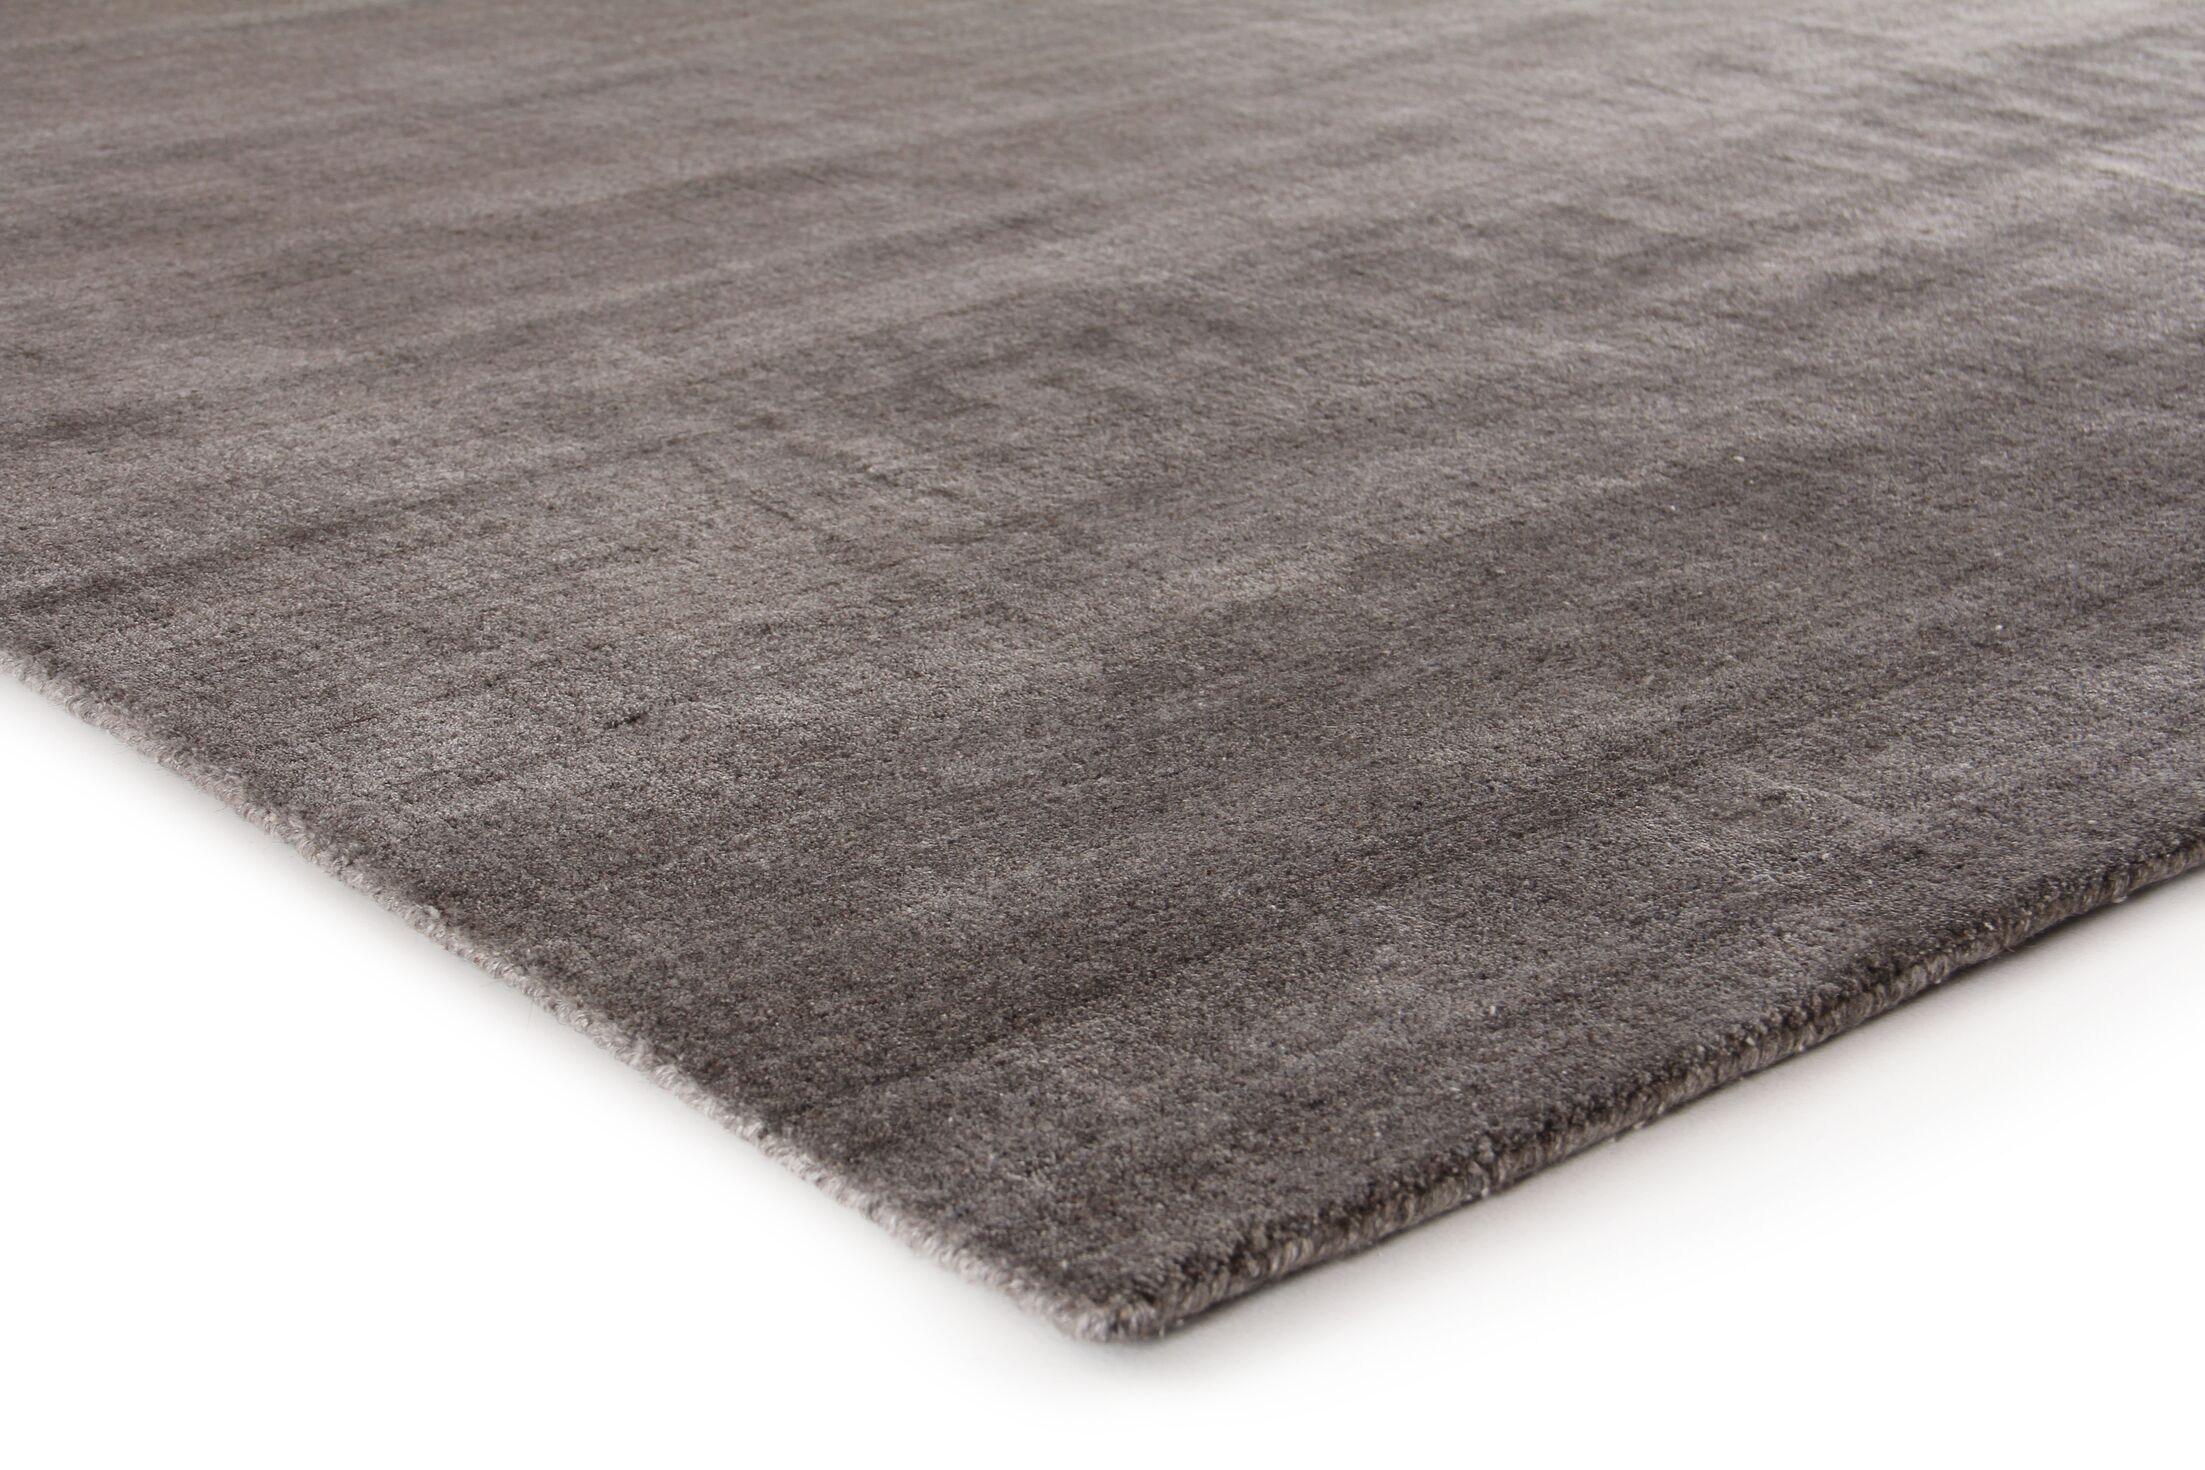 Sanctuary Hand-Woven Silk Brown Area Rug Rug Size: Rectangle 8' x 10'